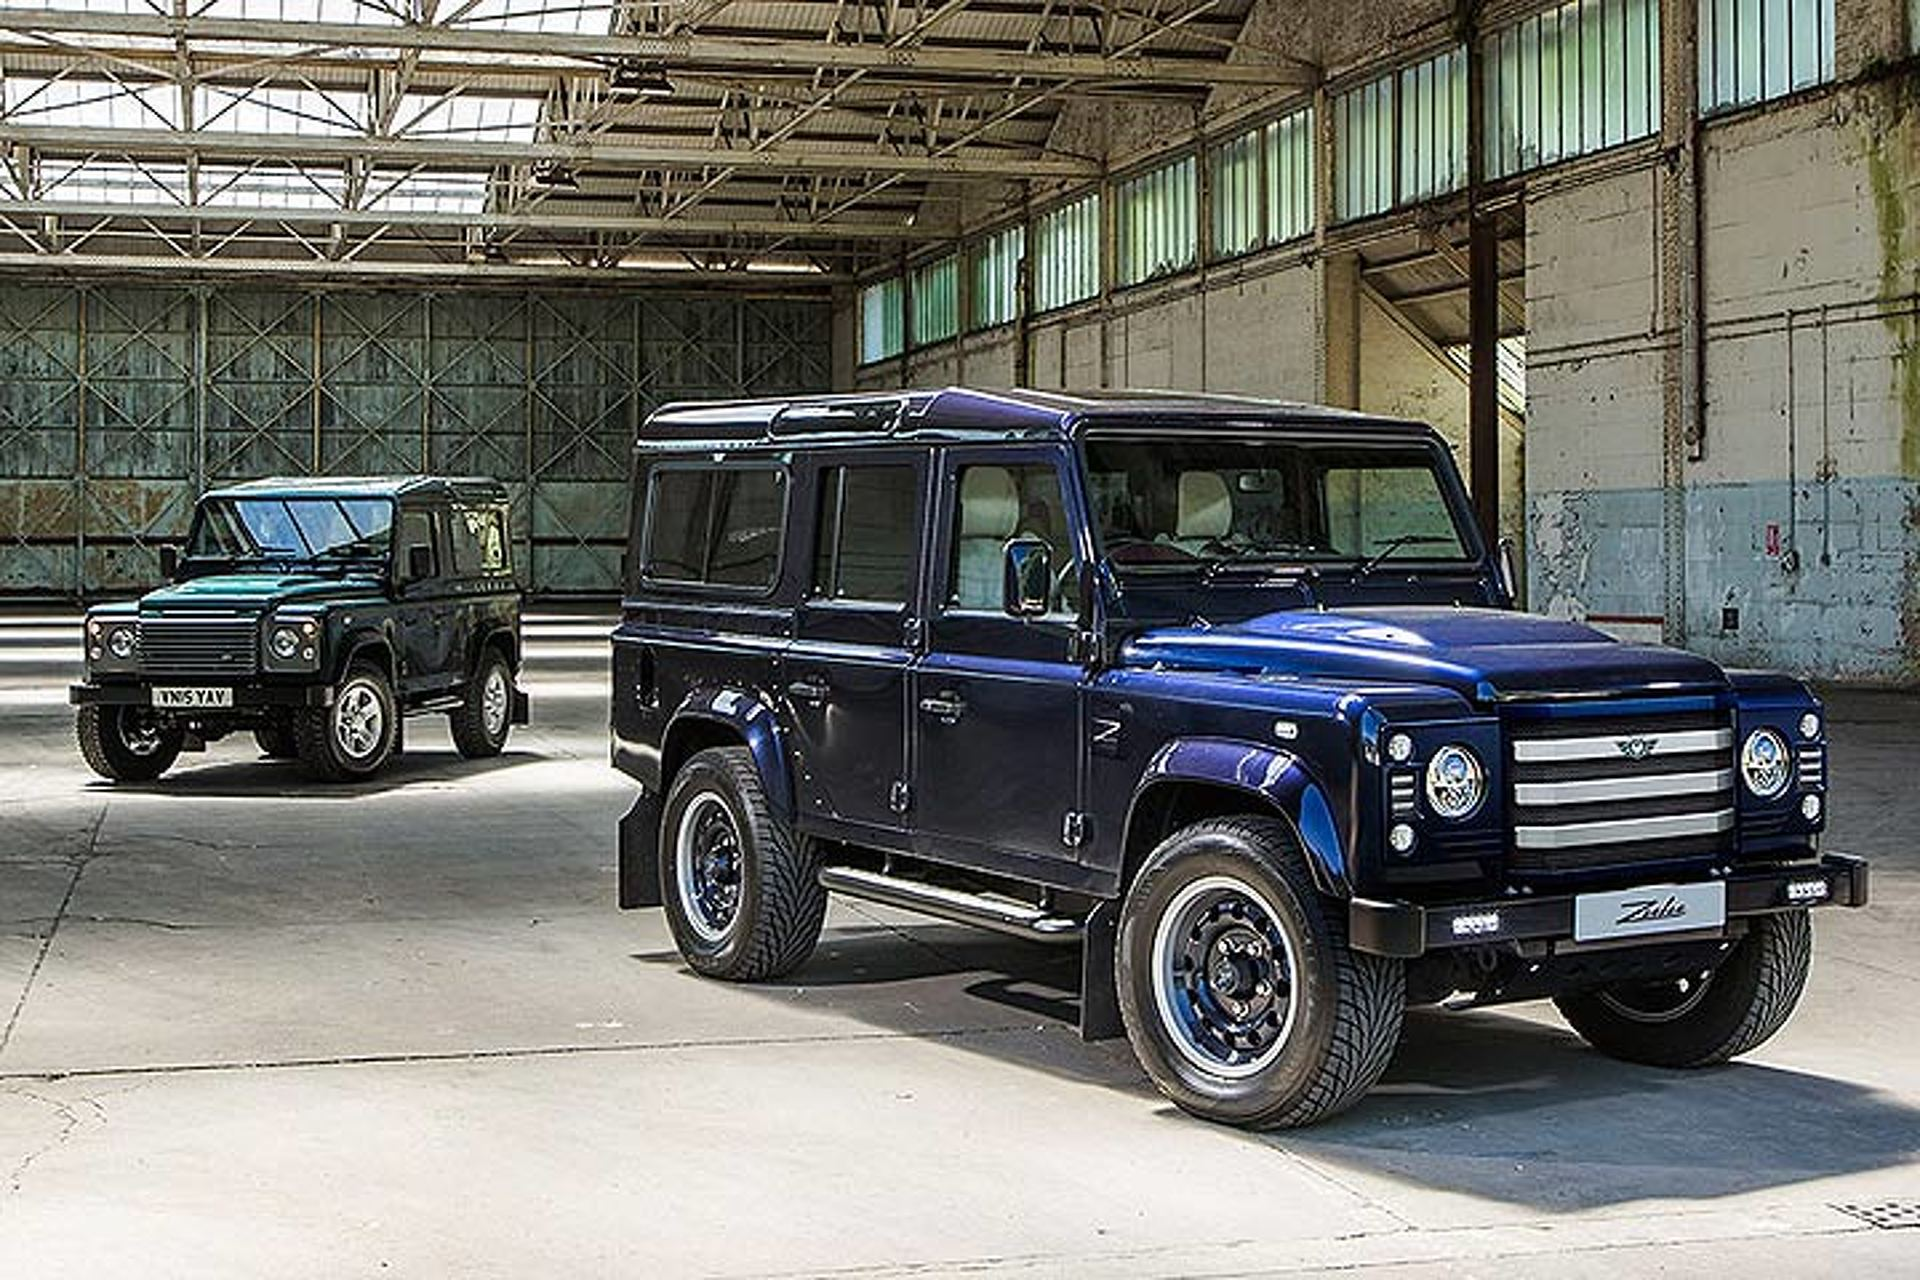 British Company Turns Land Rover Defender into a 475-HP Super-SUV